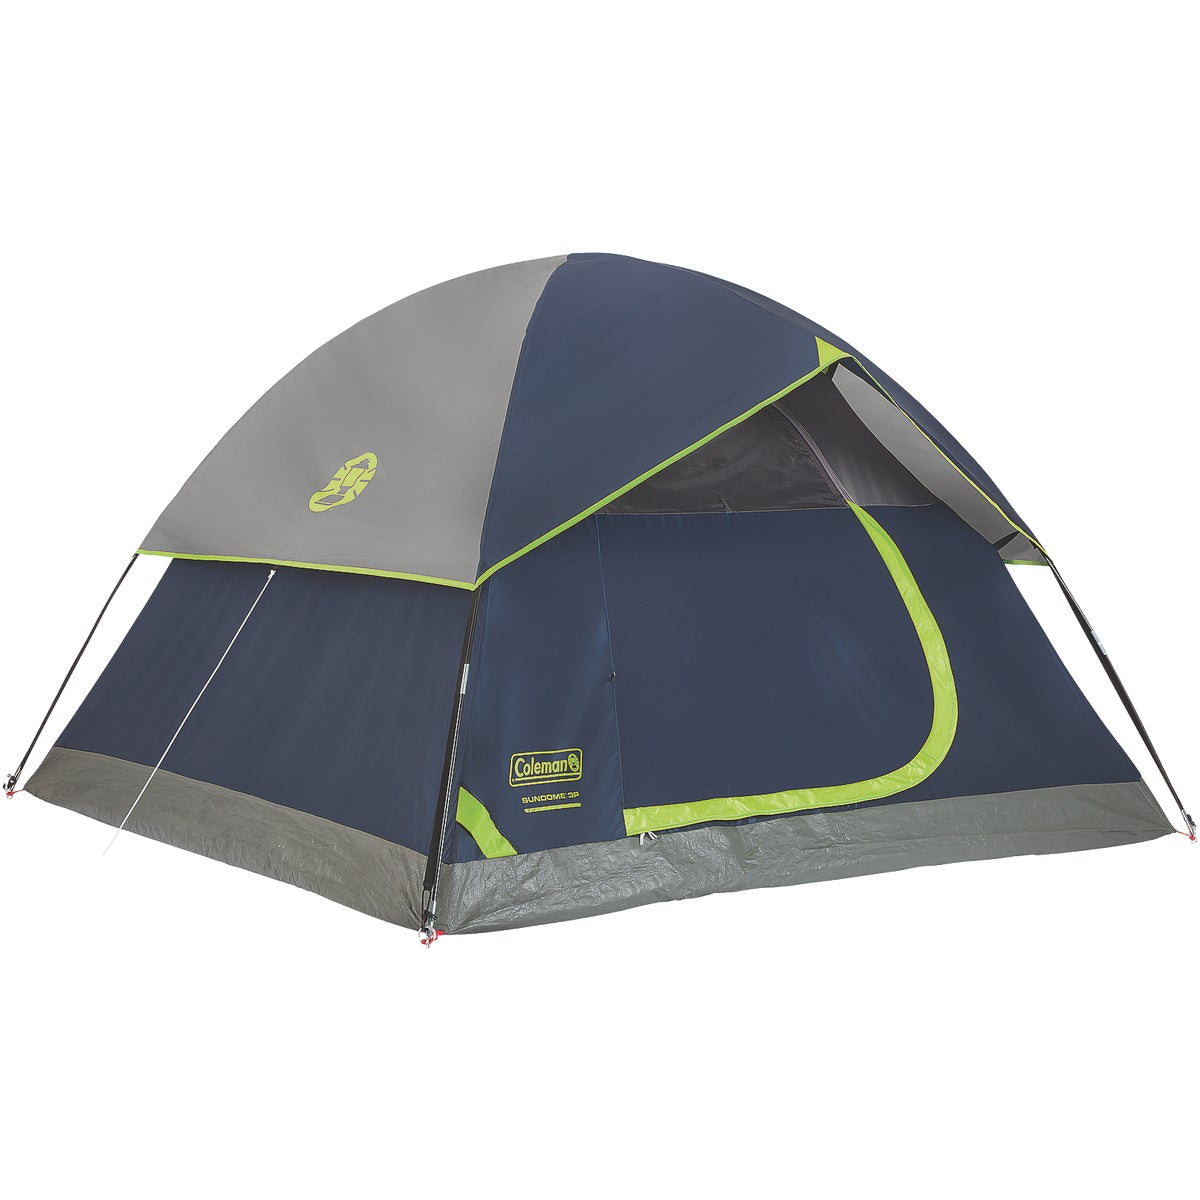 7X7 DOME TENT - 36496 by Academy Broadway Cor